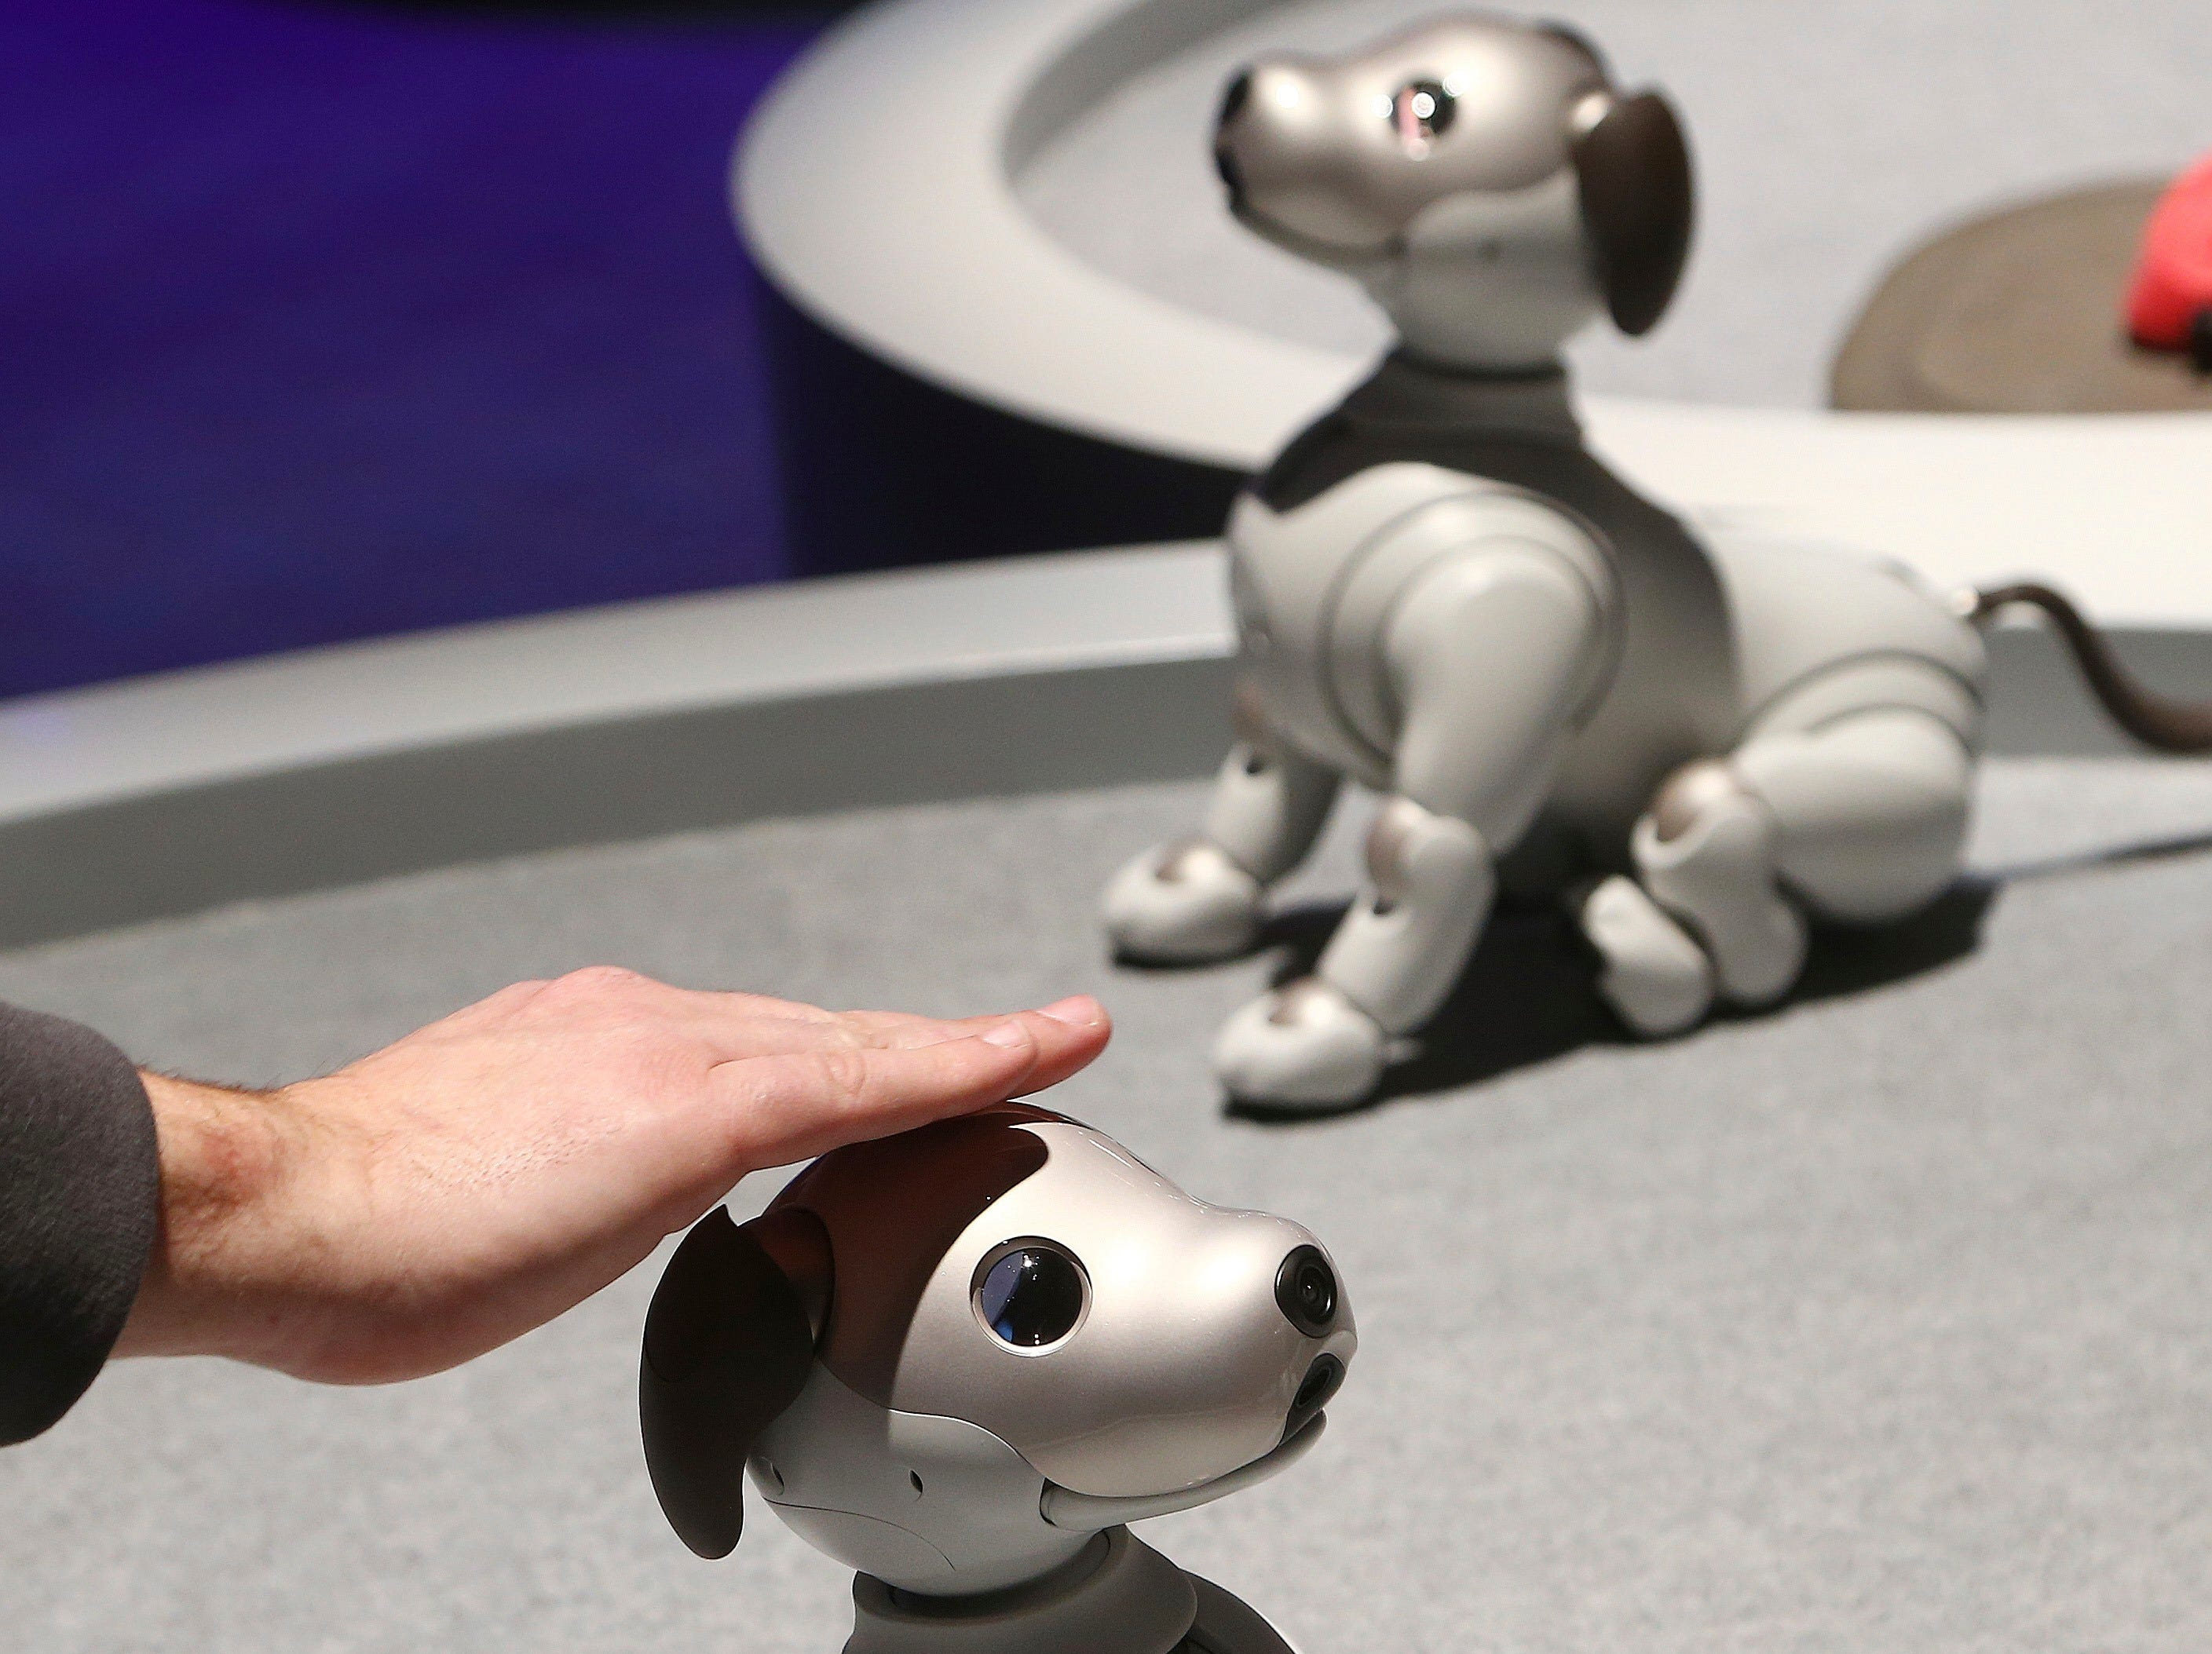 The new edition Sony Aibo robot dog incorporates a series of sensors, cameras, and actuators to activate the pup and keep it interactive, as seen inside the Sony display area at CES International on Monday, Jan. 7, 2019, in Las Vegas.